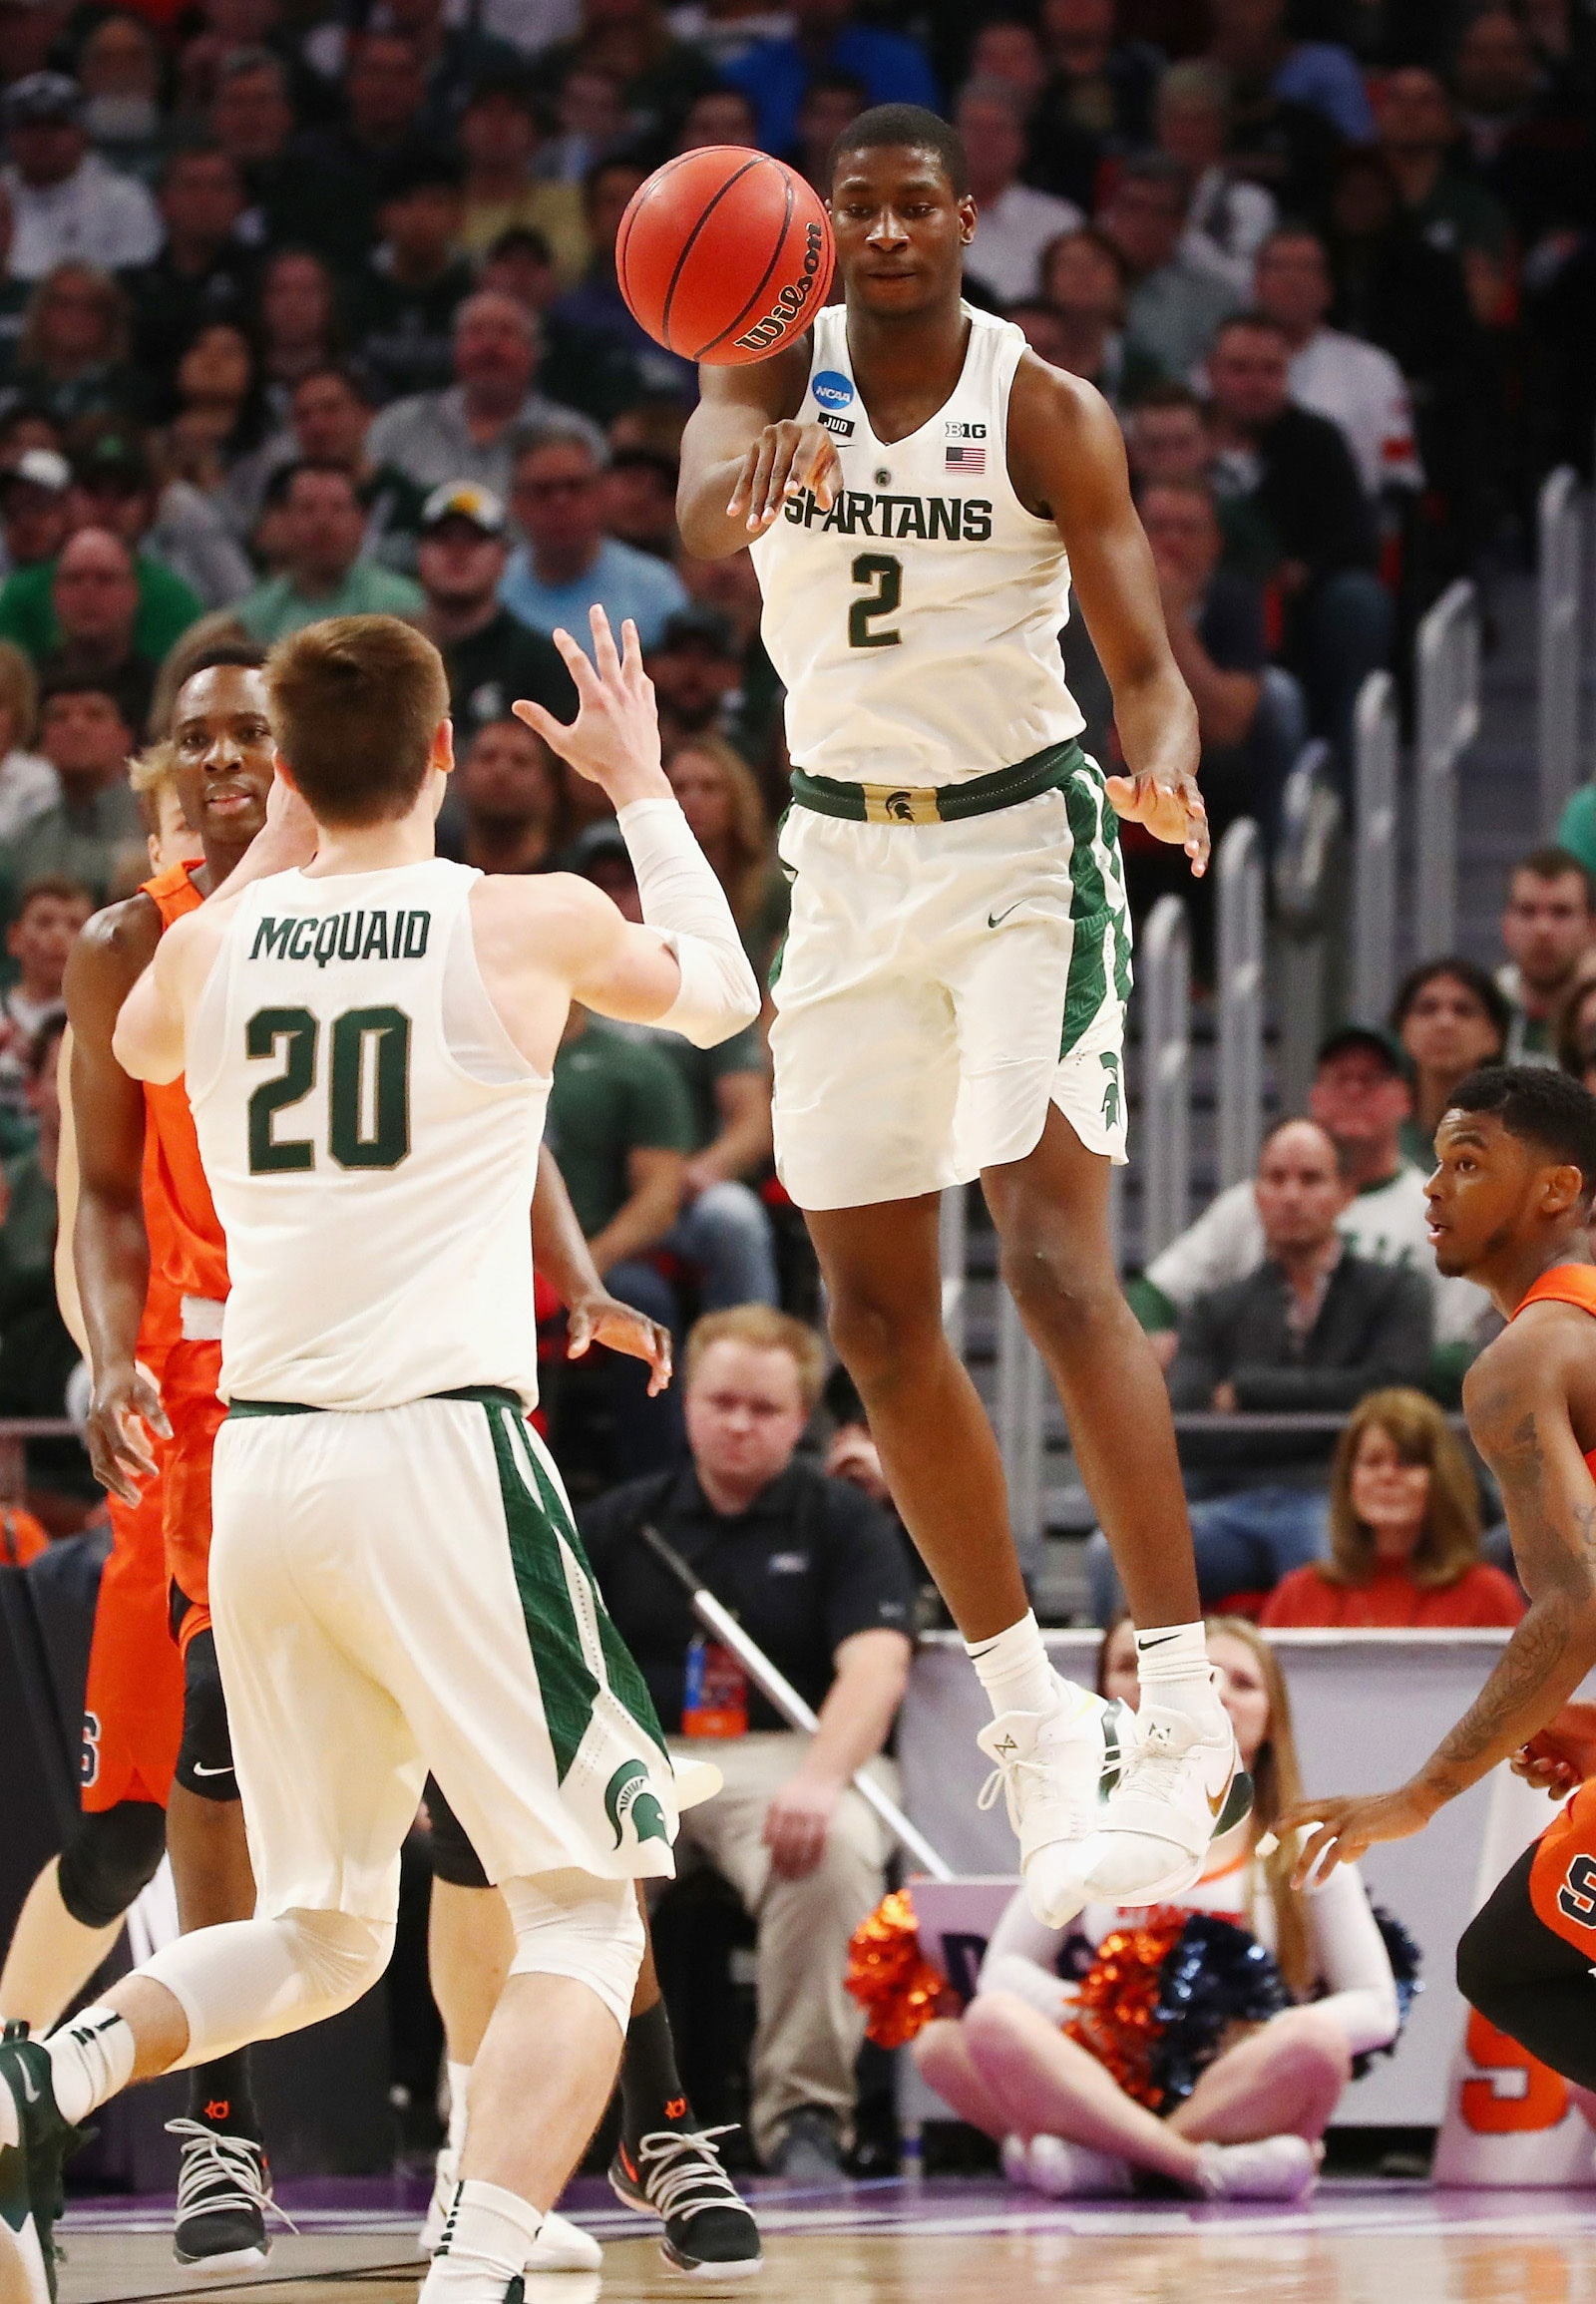 Jaren Jackson Jr. #2 of the Michigan State Spartans passes the ball during the first half against the Syracuse Orange in the second round of the 2018 NCAA Men's Basketball Tournament at Little Caesars Arena on March 18, 2018 in Detroit, Michigan.